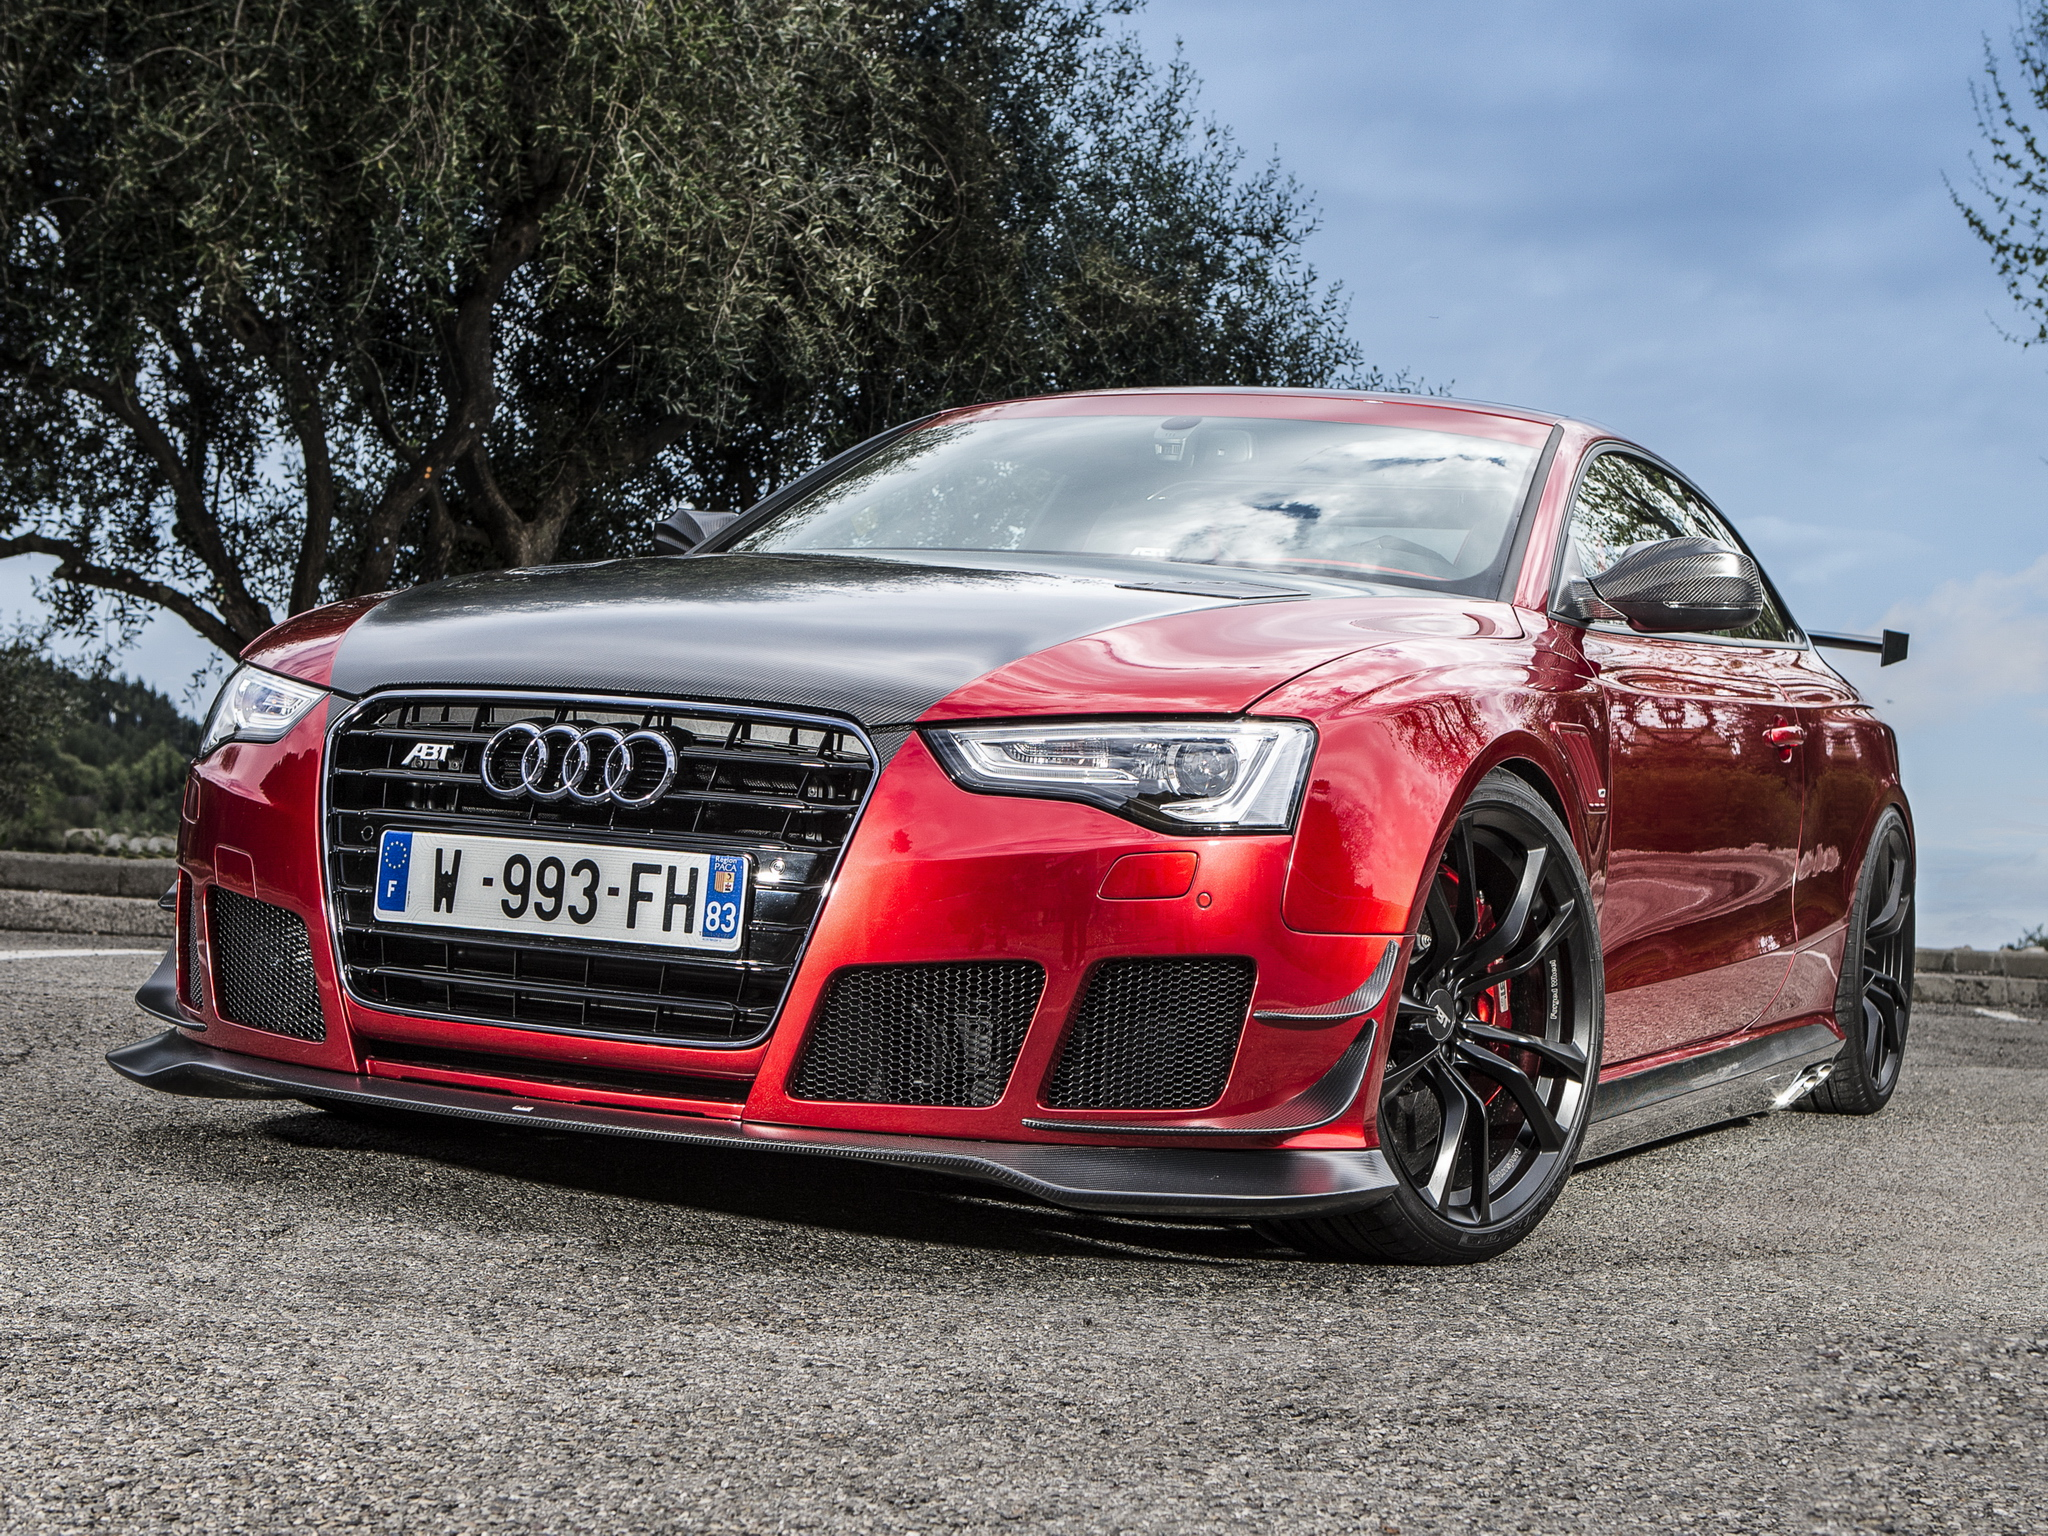 2014 abt audi rs5 r coupe tuning r55 f wallpaper 2048x1536 181535 wallpaperup. Black Bedroom Furniture Sets. Home Design Ideas